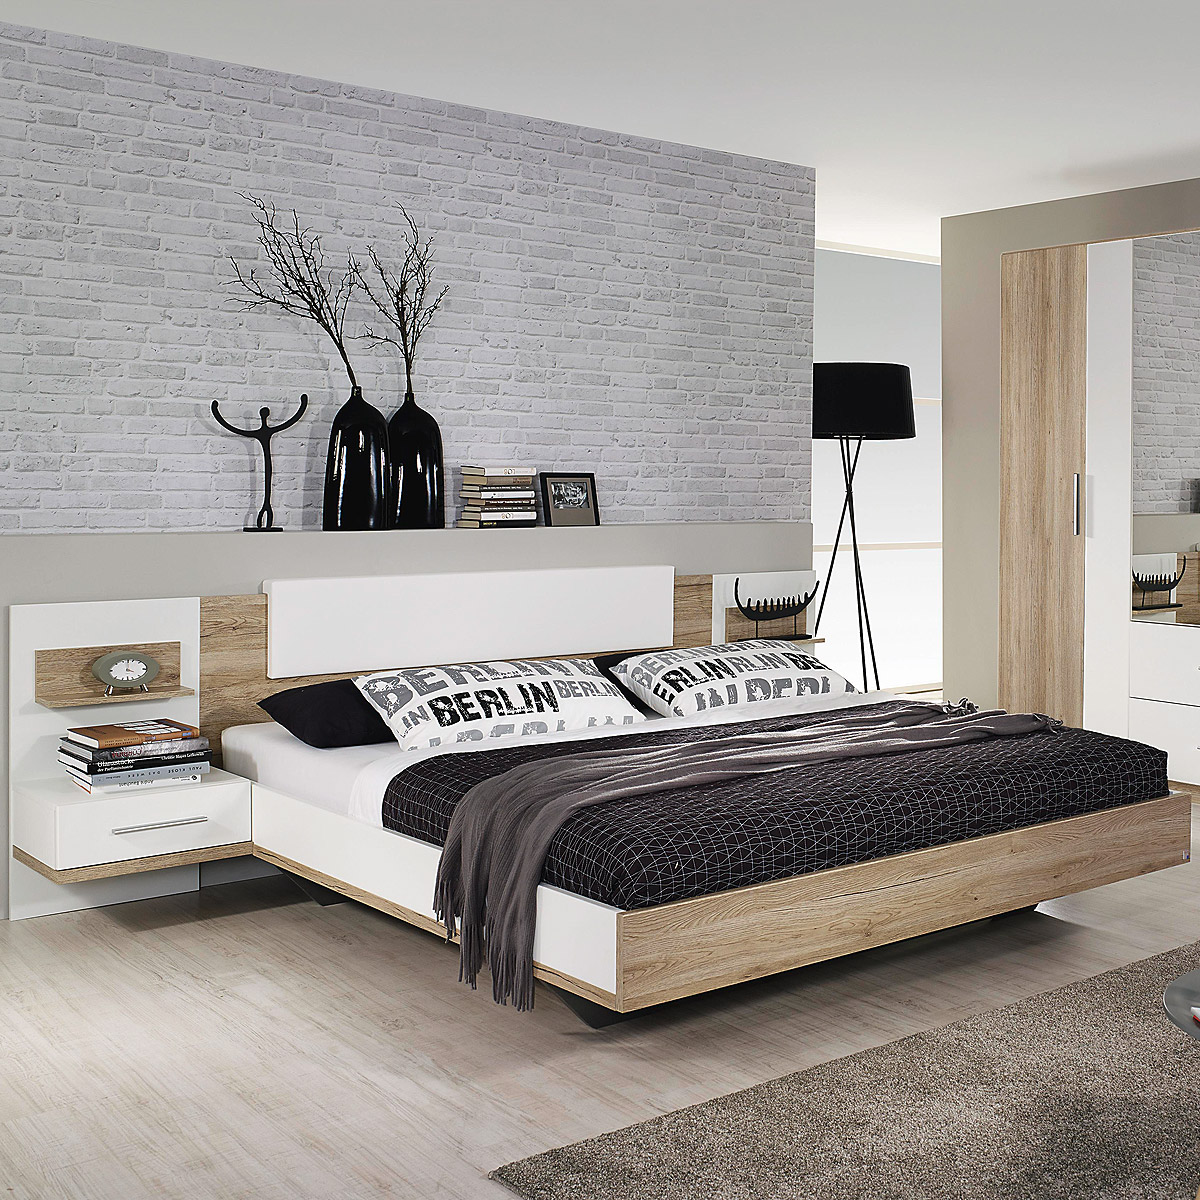 bettanlage bustas bett nako eiche sanremo hell und wei. Black Bedroom Furniture Sets. Home Design Ideas